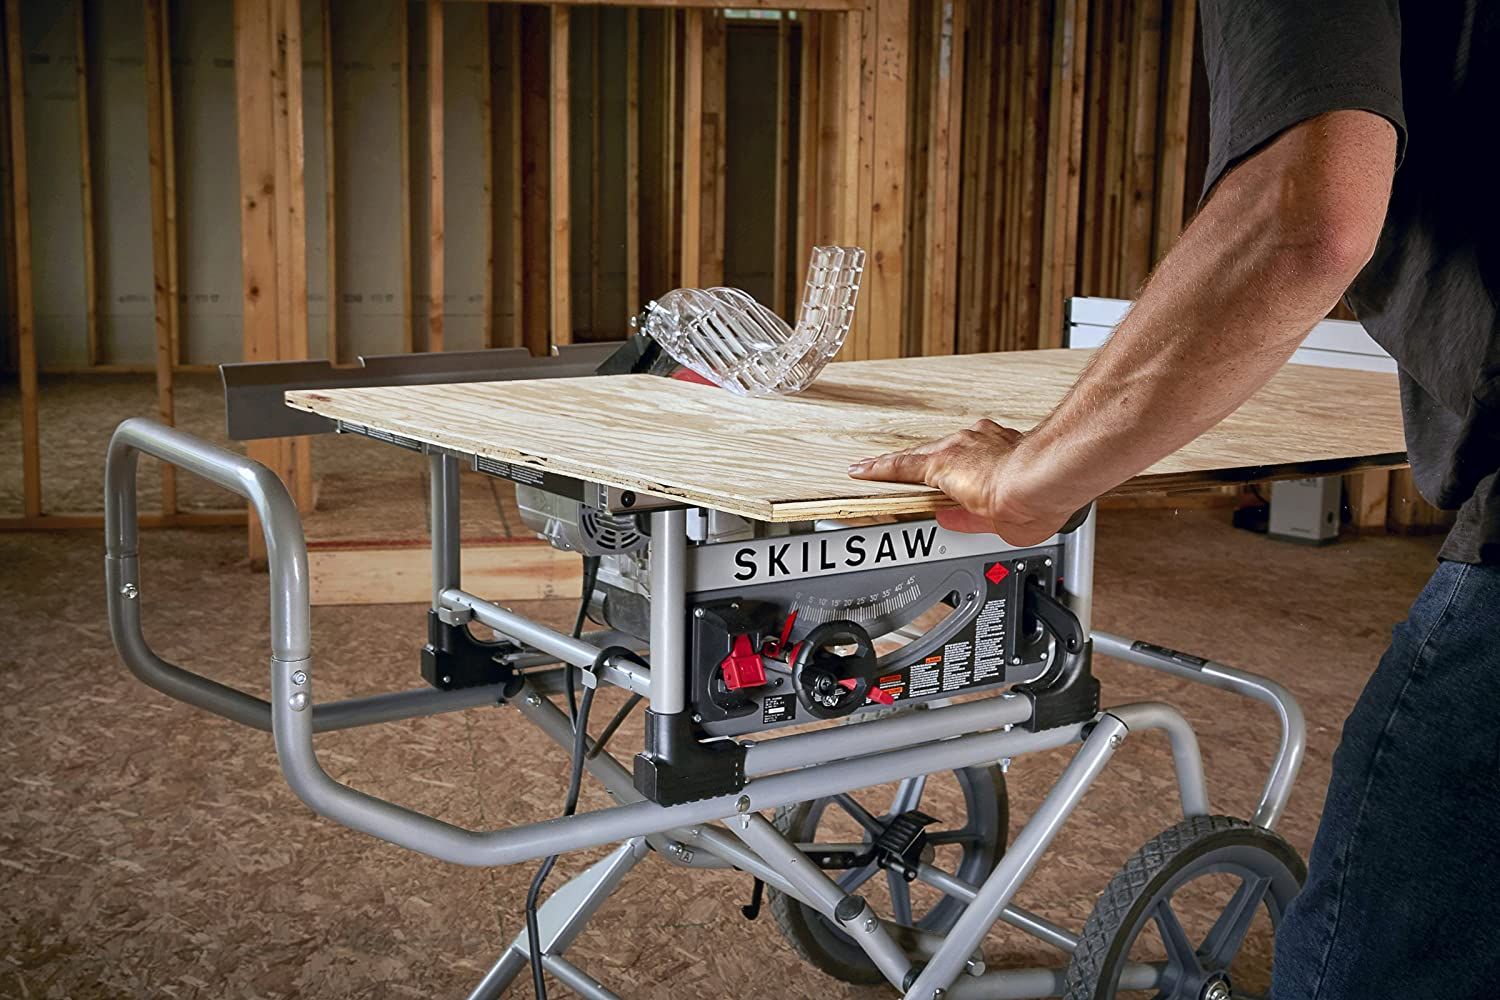 SKILSAW SPT99-11 Table Saws product image 6